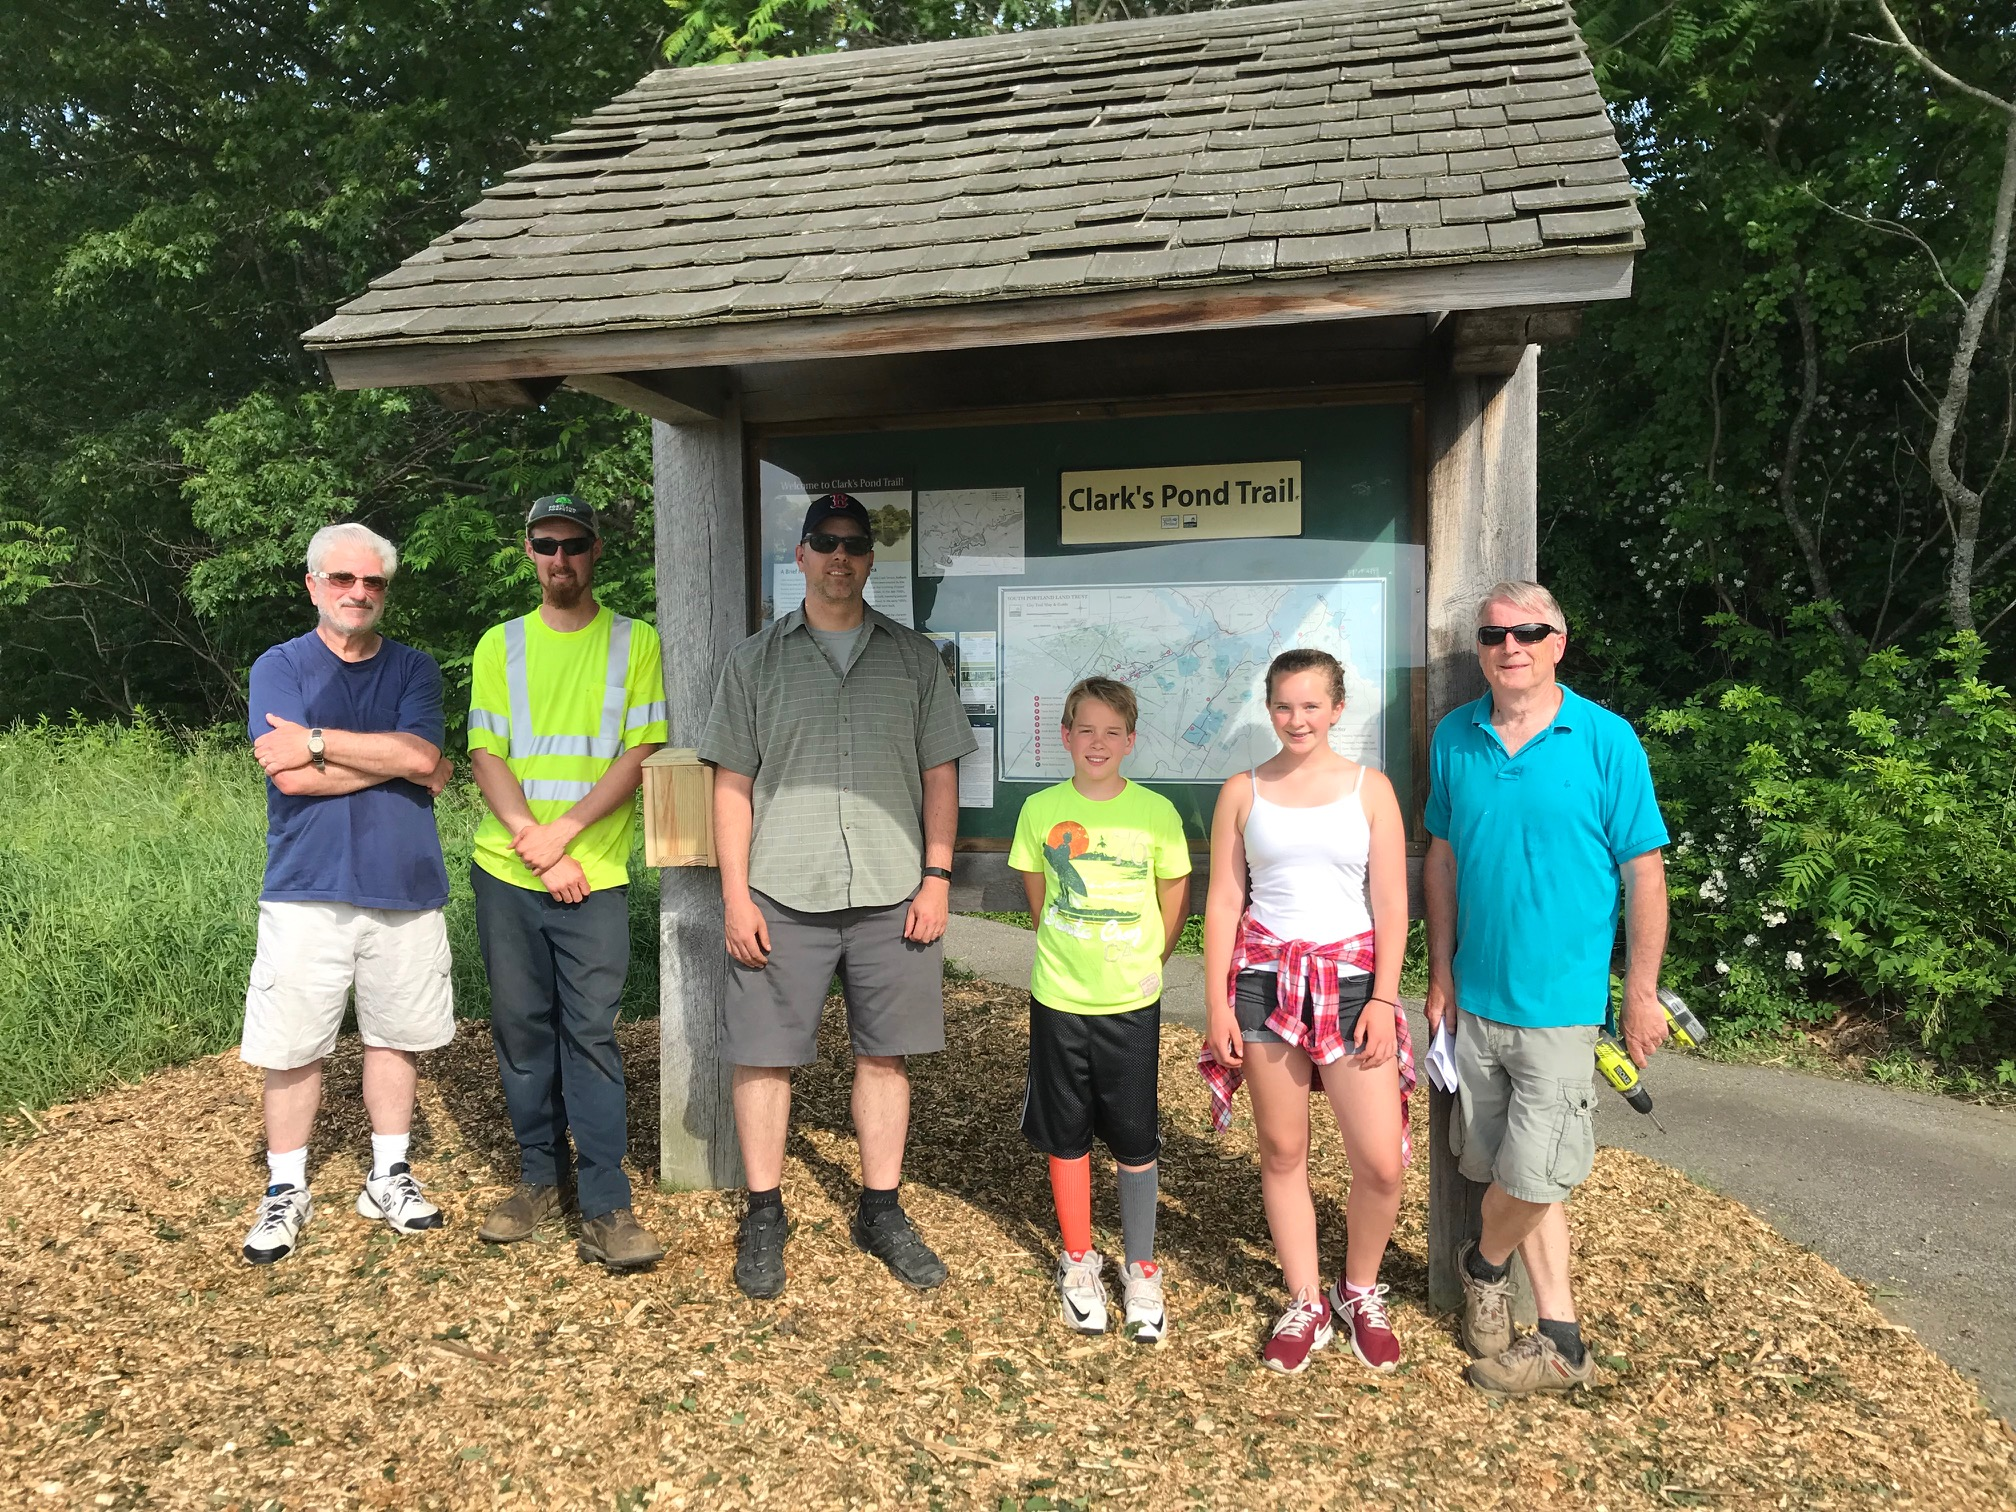 Read about volunteer opportunities, new trail projects, the City's Open Space Plan, and much more in the SPLT summer newsletter